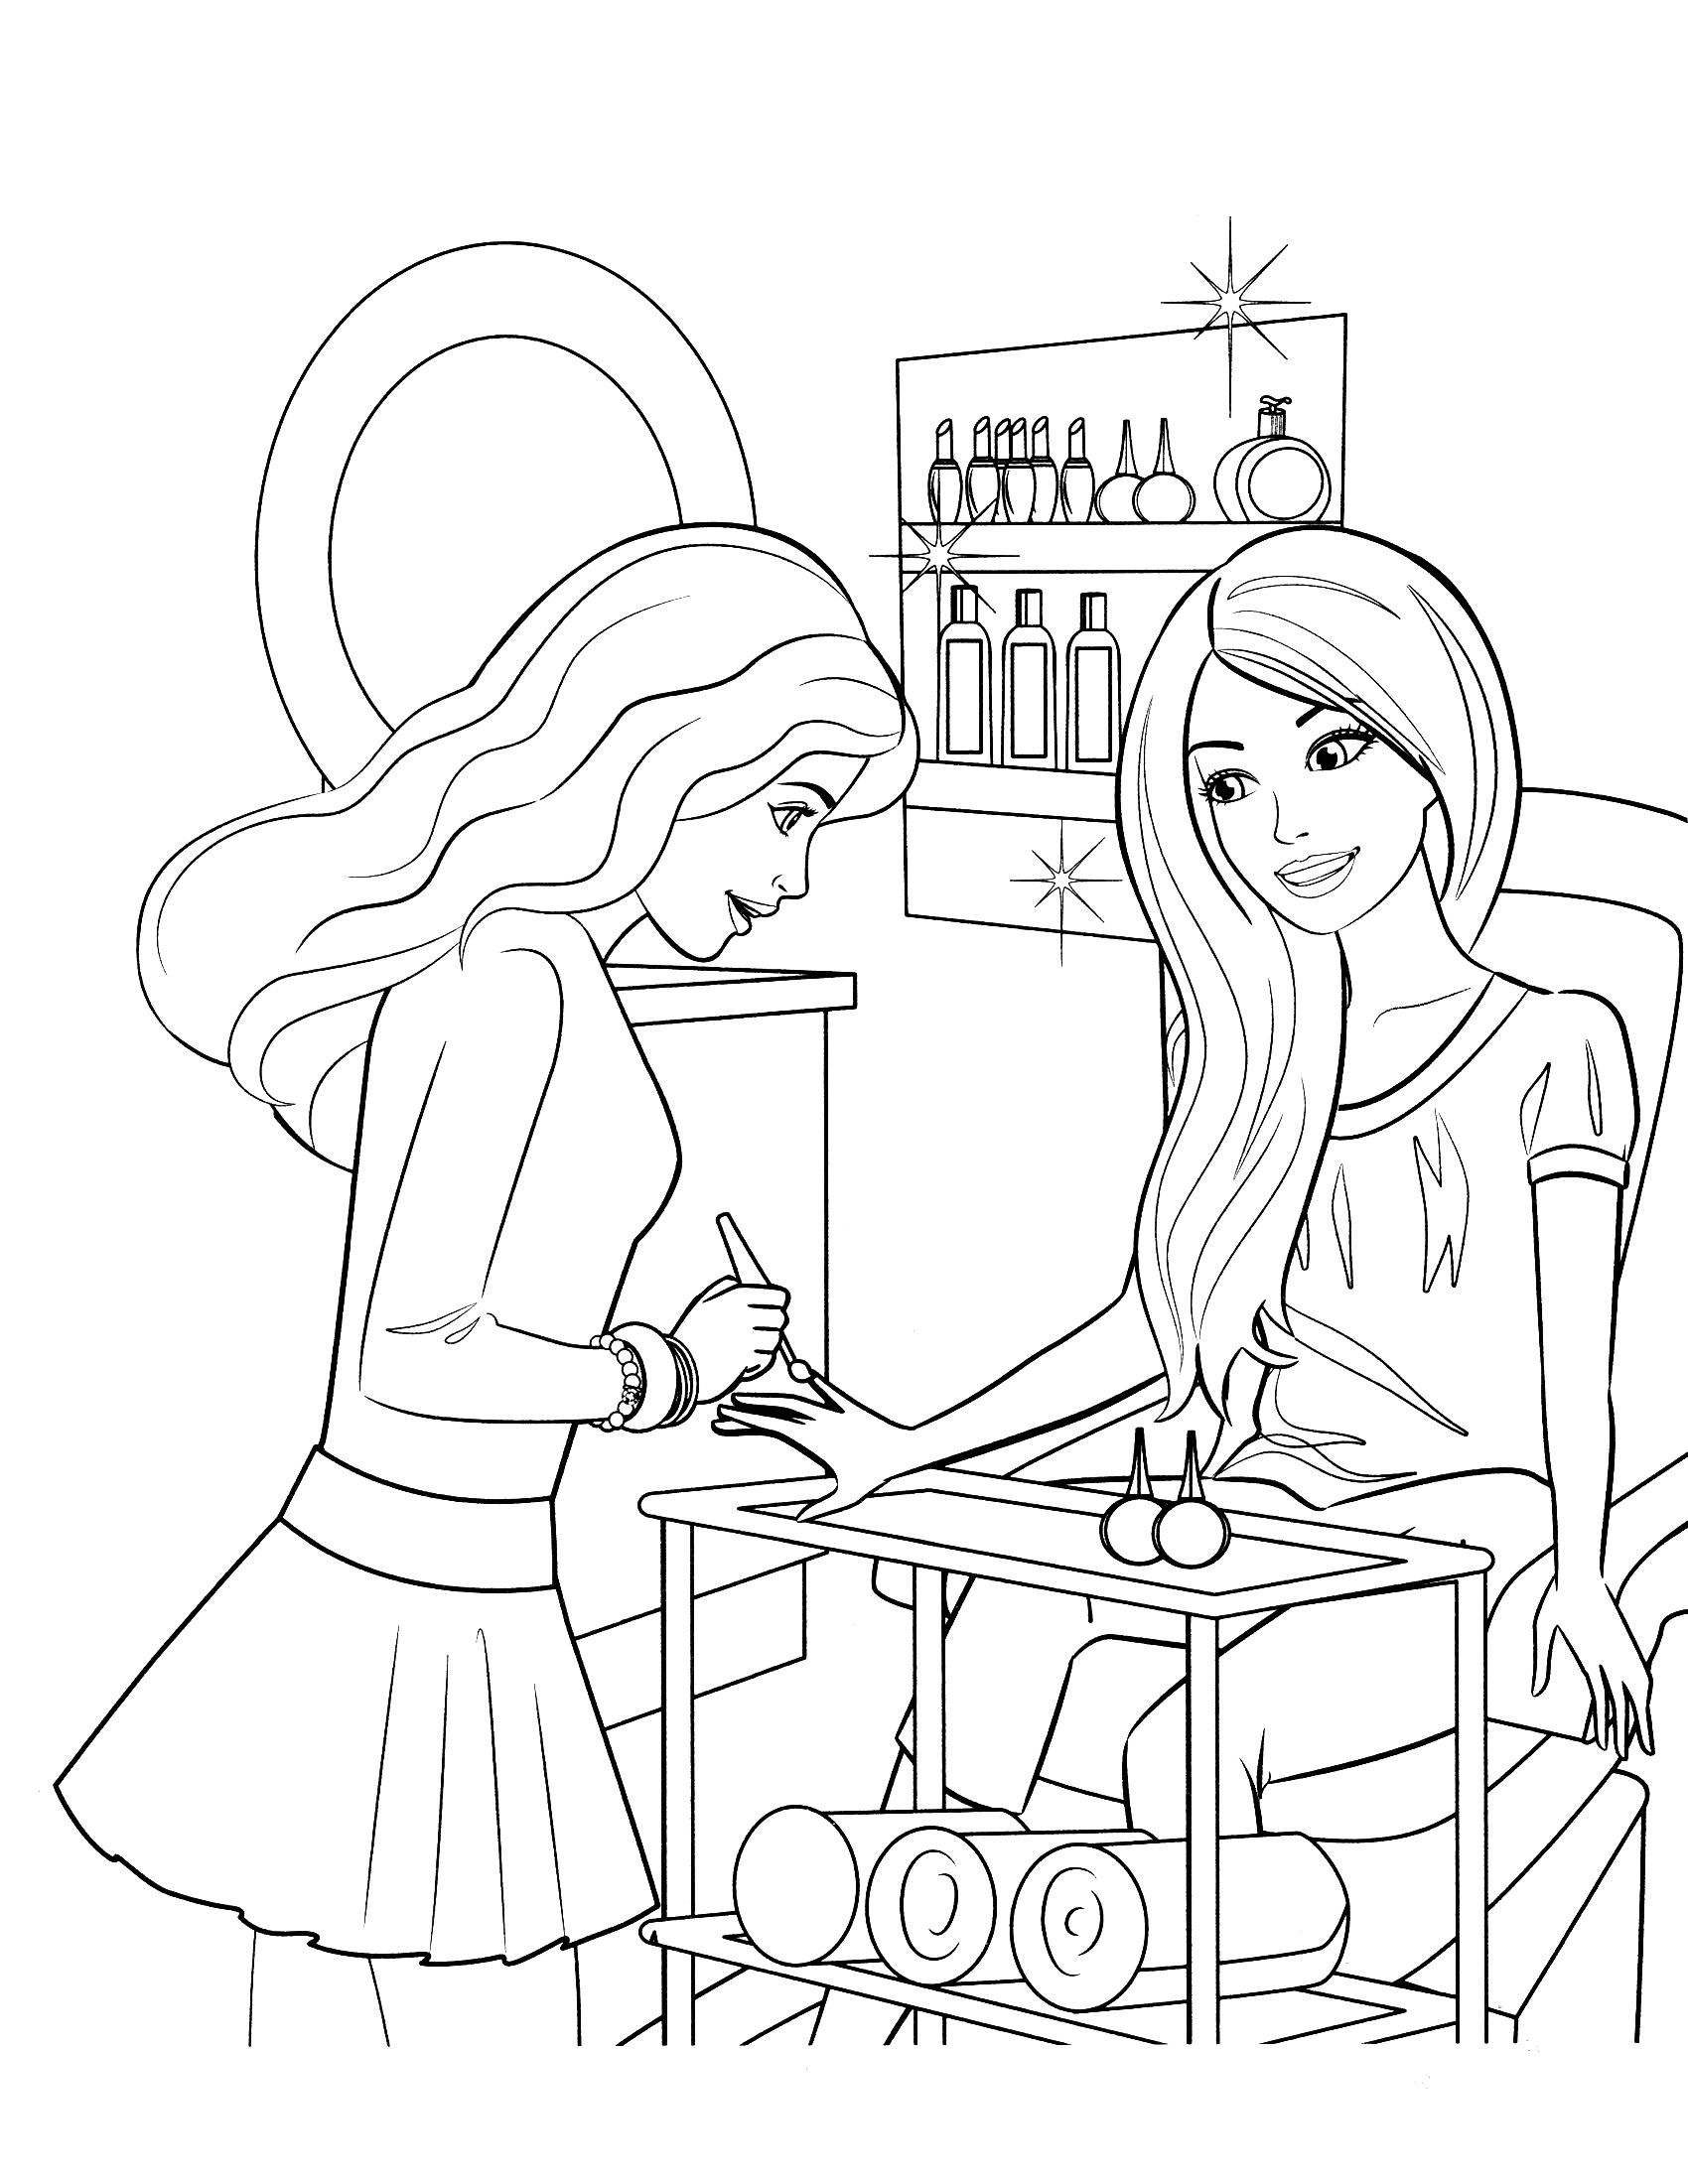 Free Printable Barbie Coloring Pages For Kids Barbie Drawing